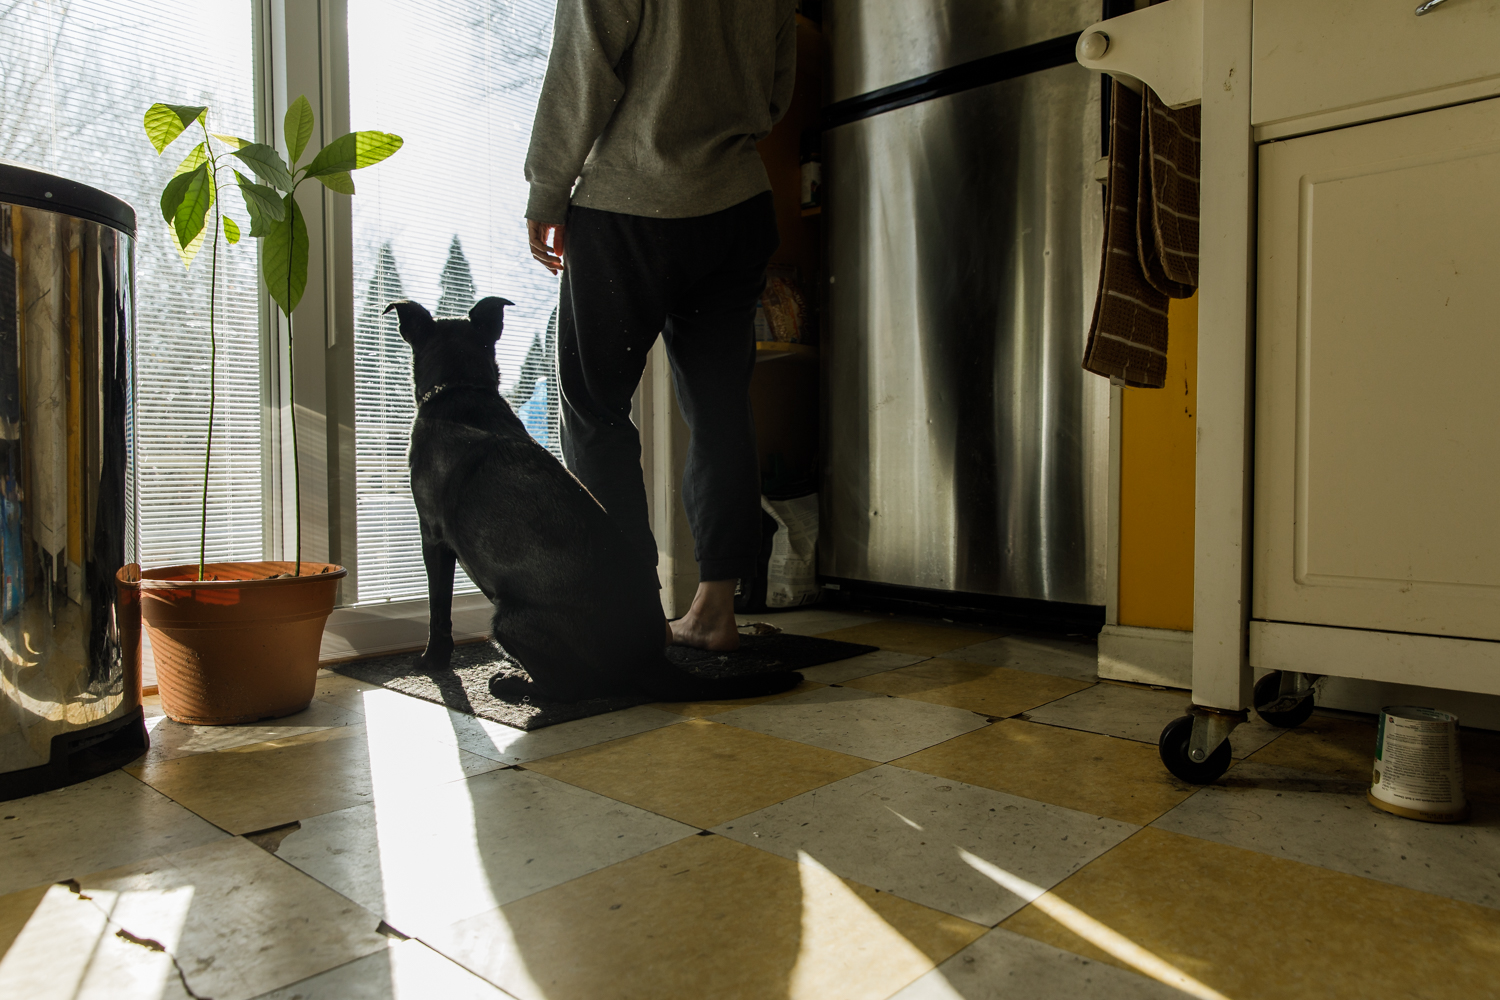 Dog and woman standing next to sliding glass door